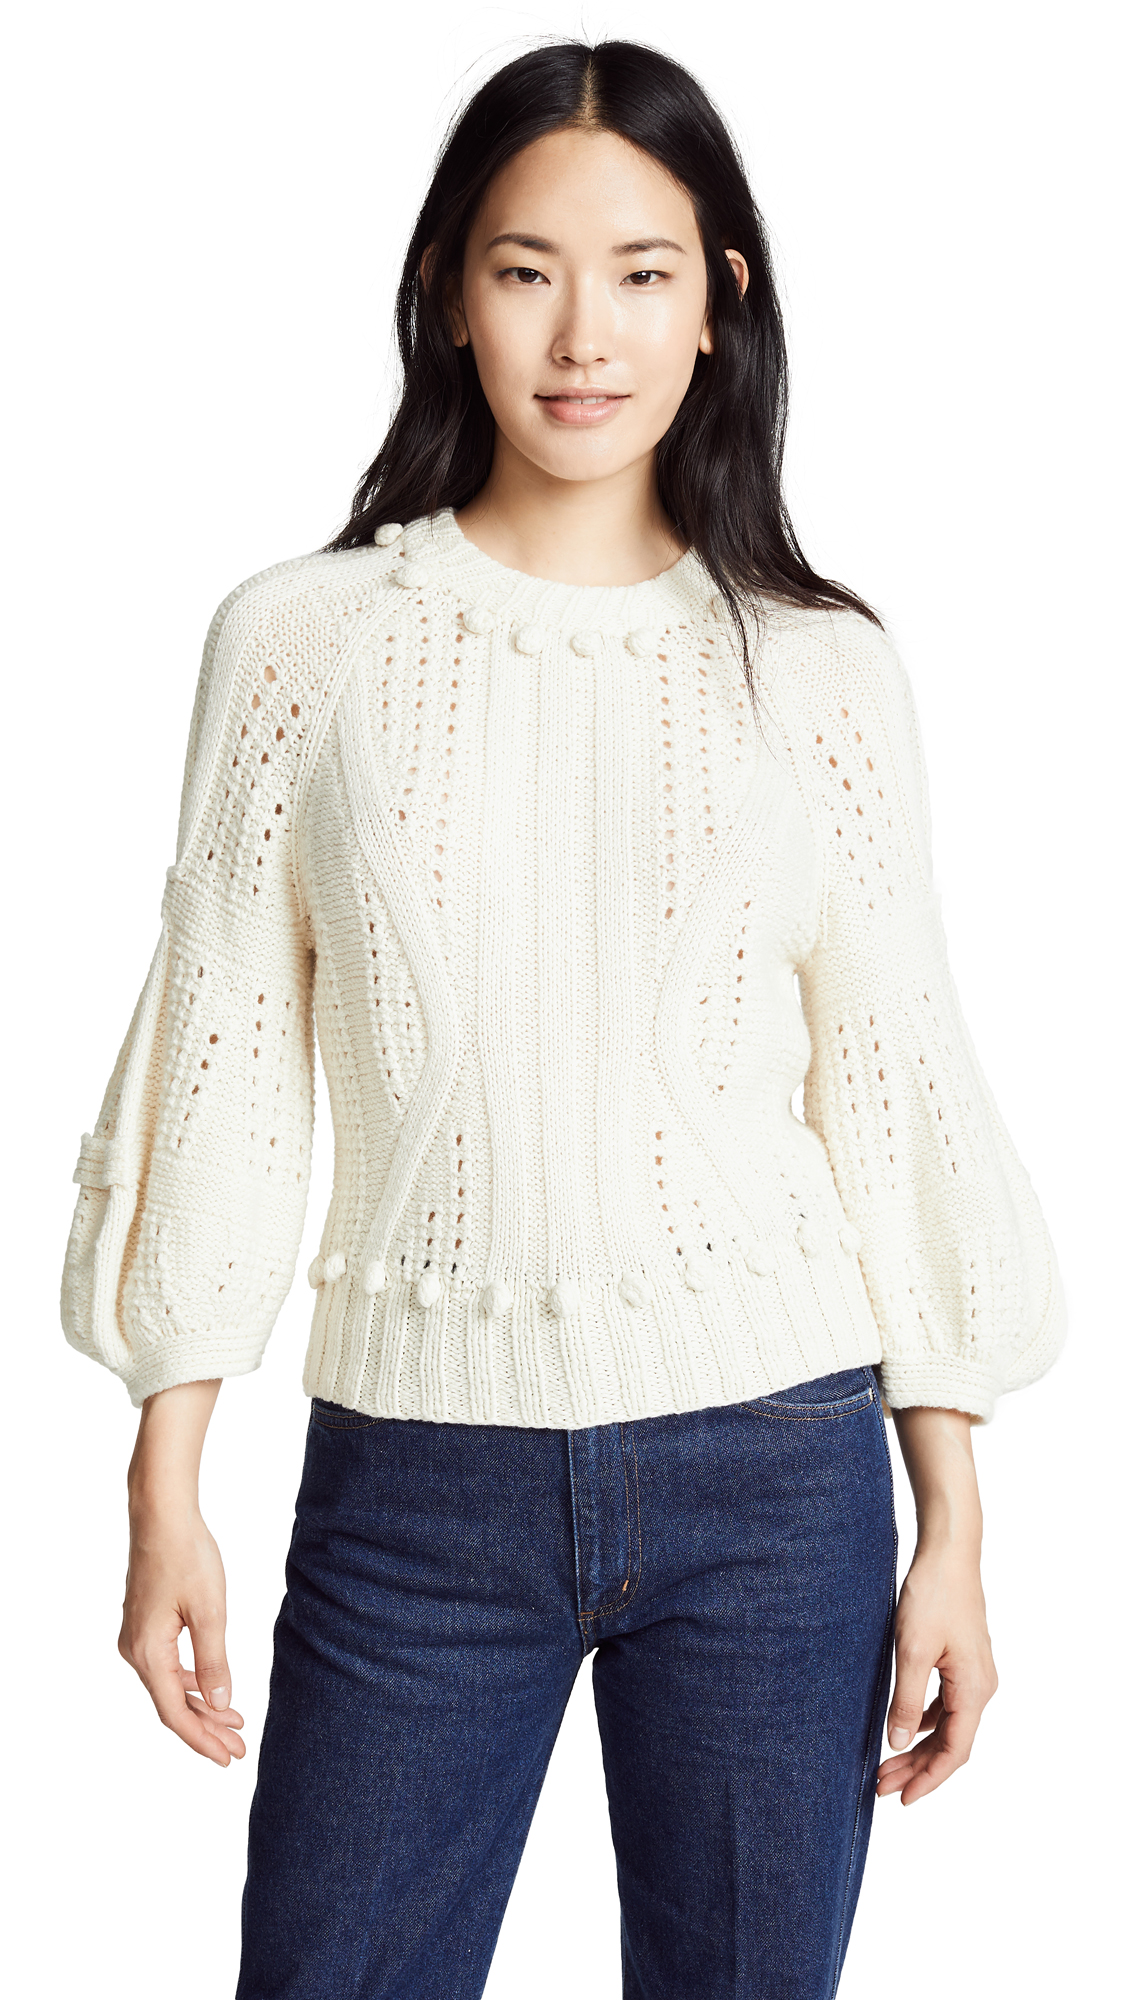 SPENCER VLADIMIR Cello Cashmere Sweater in Ivory